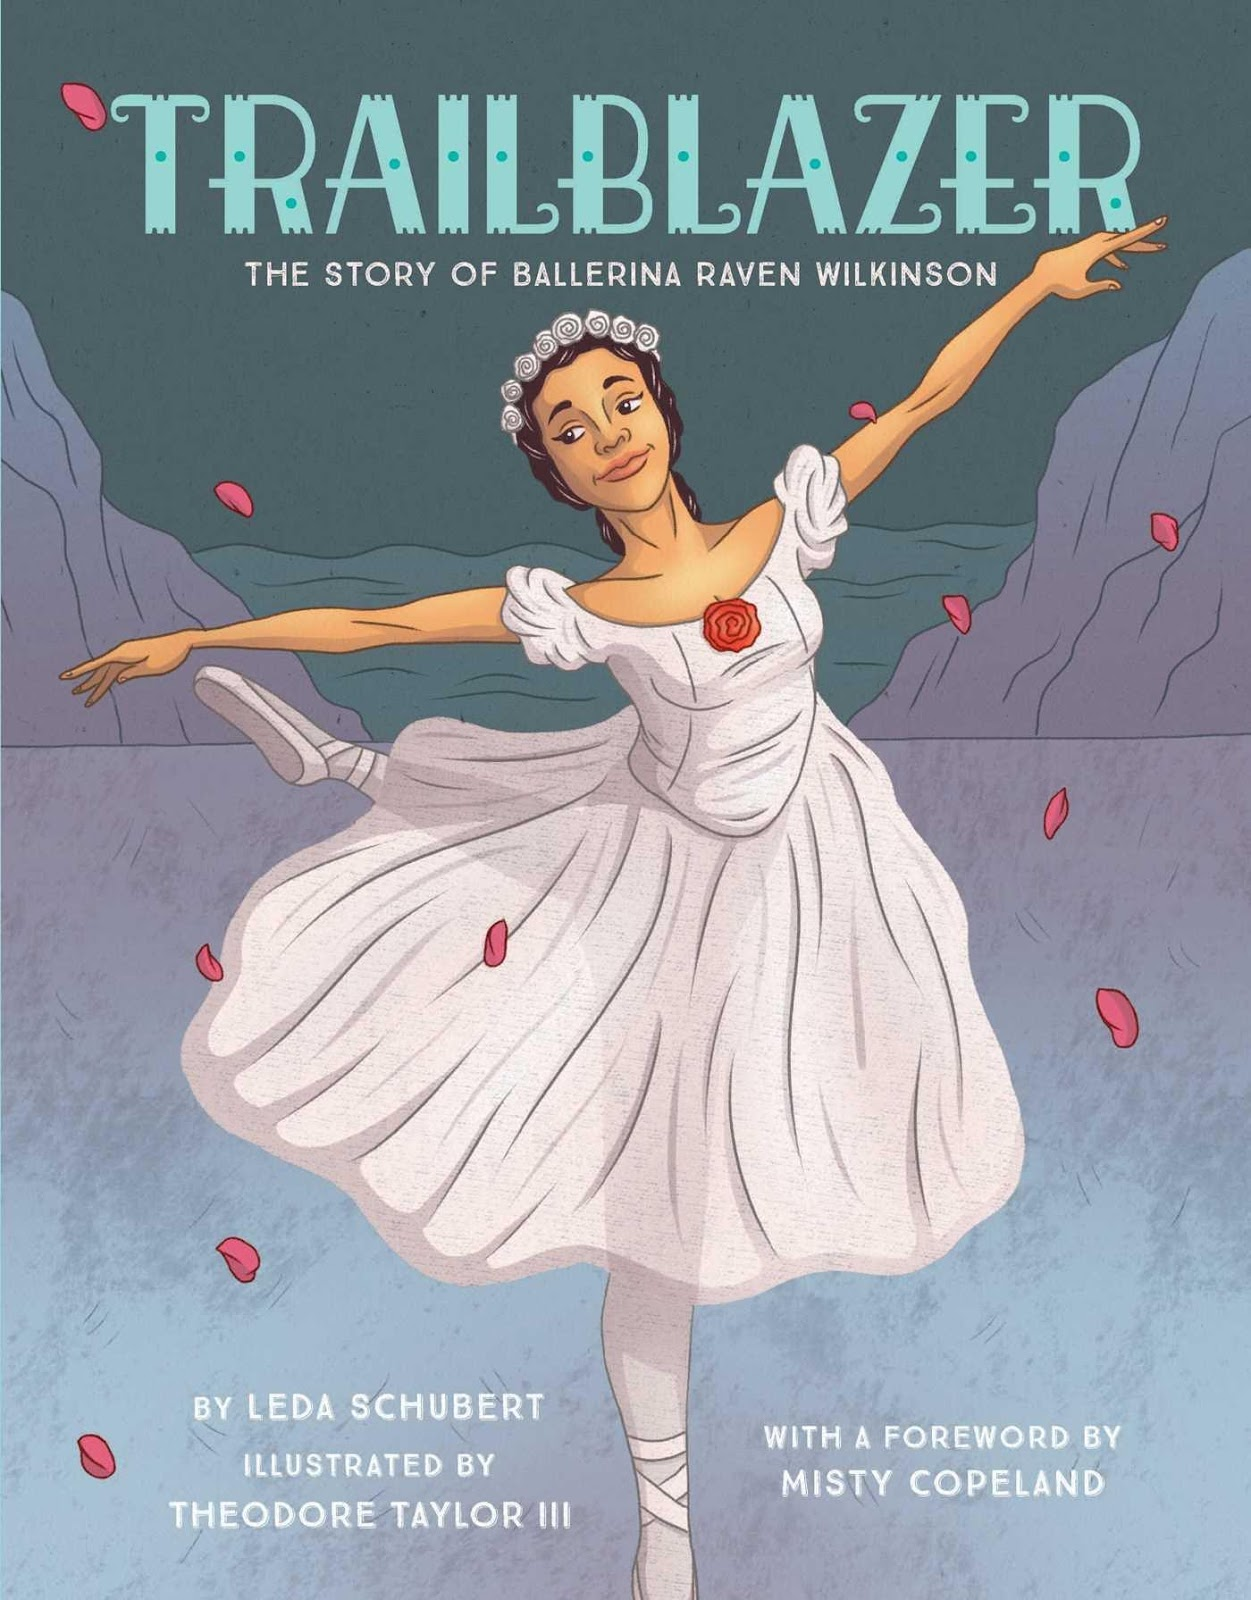 Cover of Trailblazer depicting a black ballerina in a white dress dancing on a frozen lake with red rose petals surrounding her.